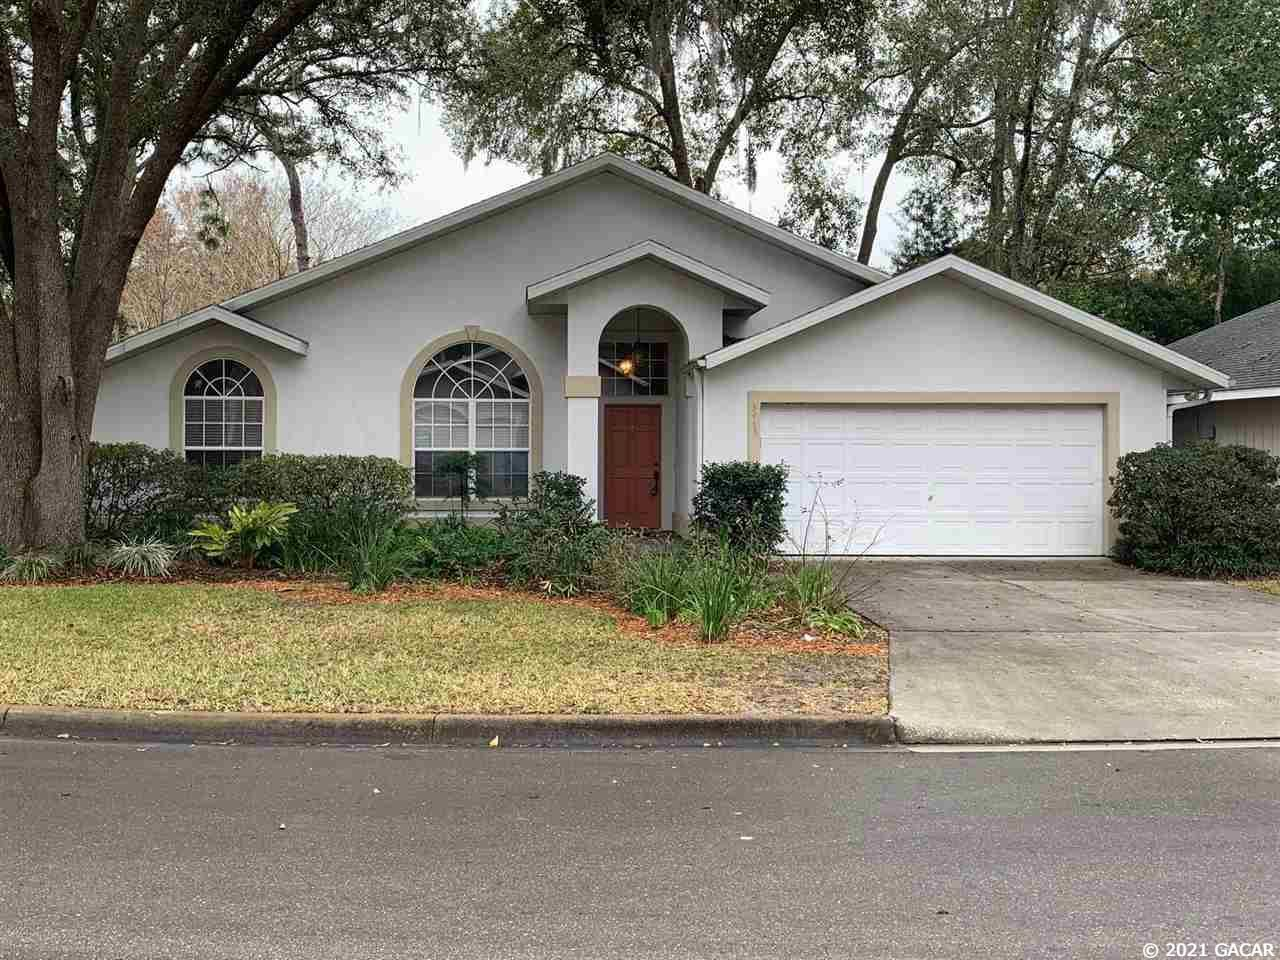 3415 NW 61 Place, Gainesville, FL 32653-3415 - #: 441035